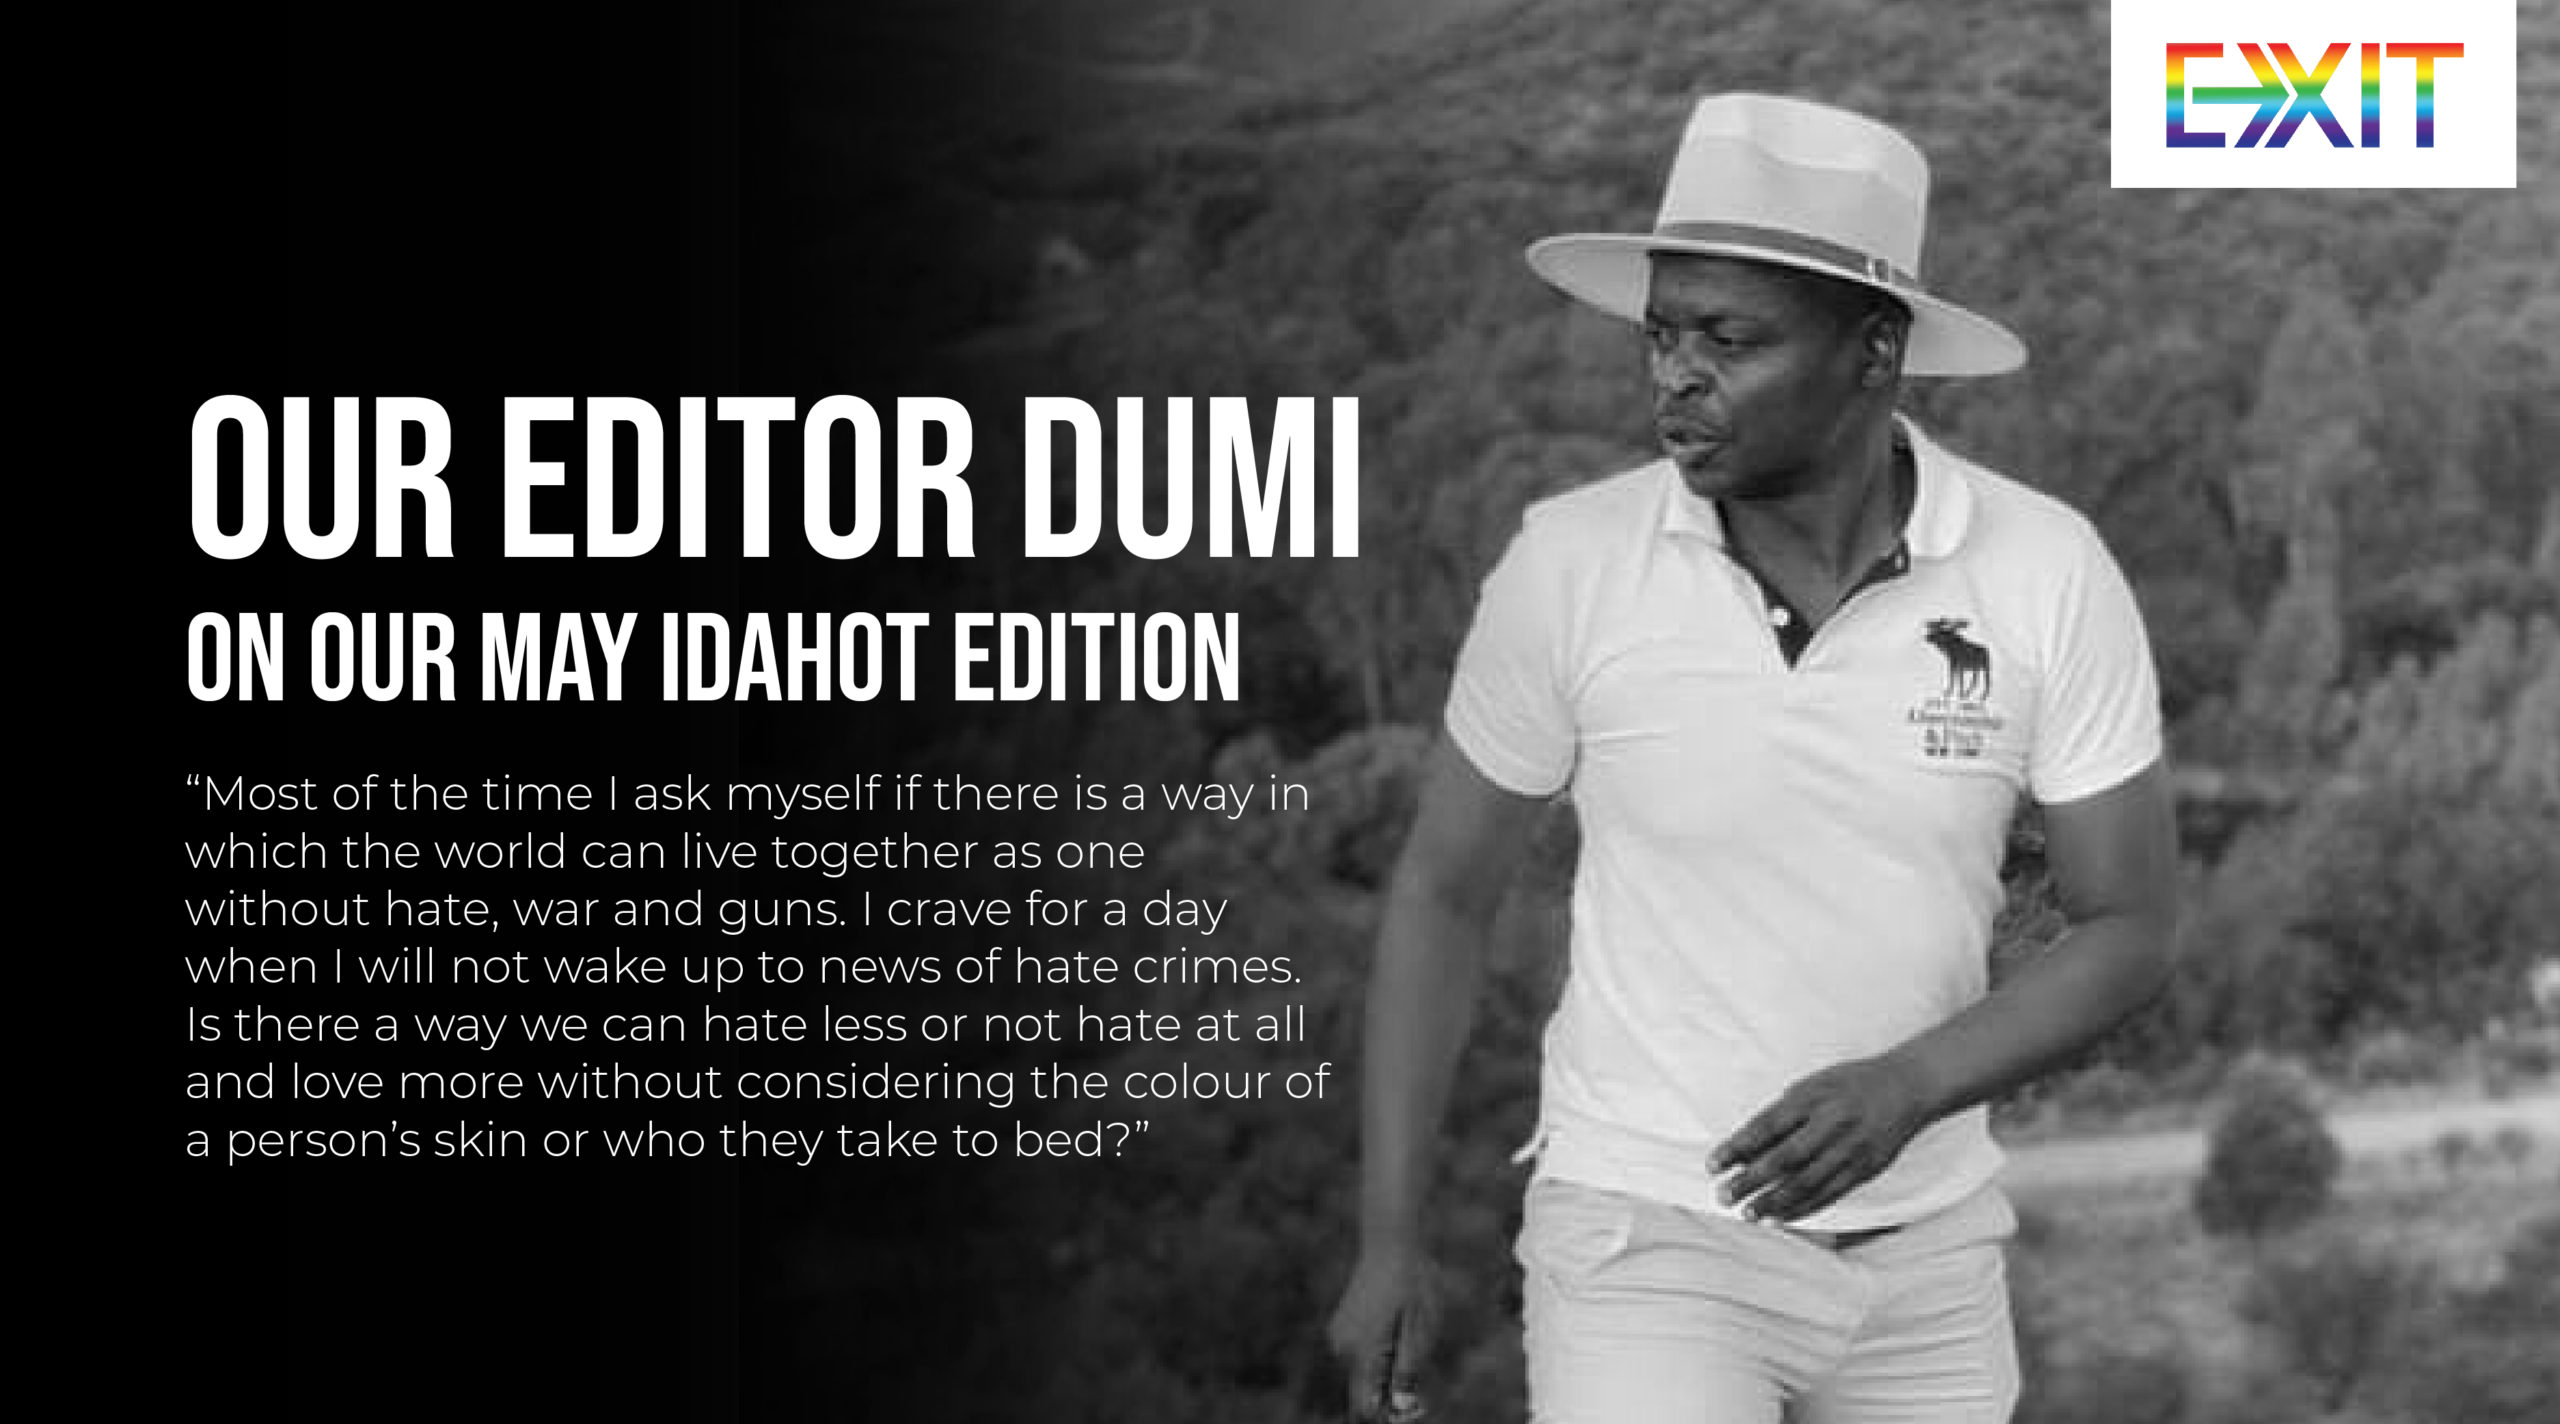 FROM OUR EDITOR, DUMI ON OUR MAY IDAHOT EDITION